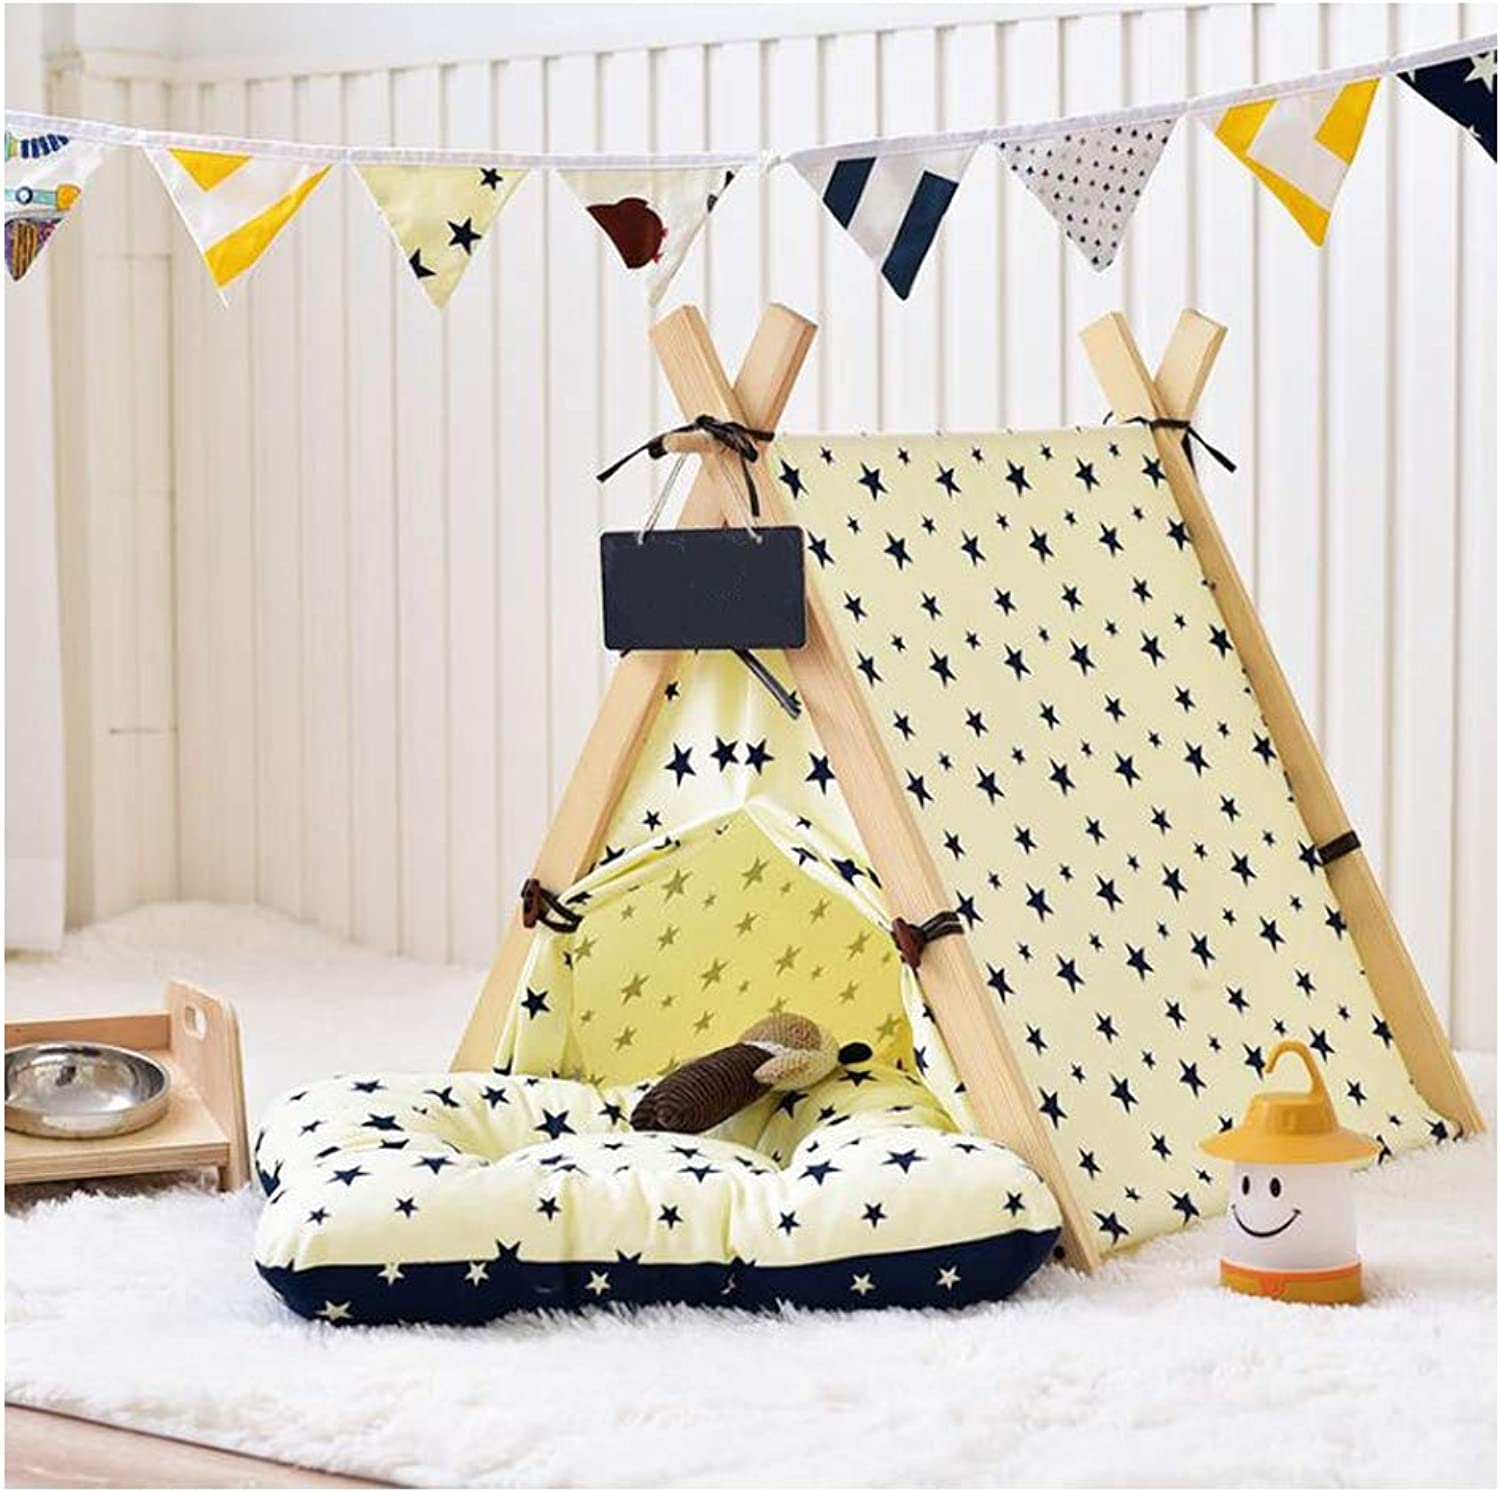 GDDYQ Dog Tent, Easy to Install and Washable Pet Indoor Tent Fashion Style Cat Dog Game House, There are Many Options,Tent,S